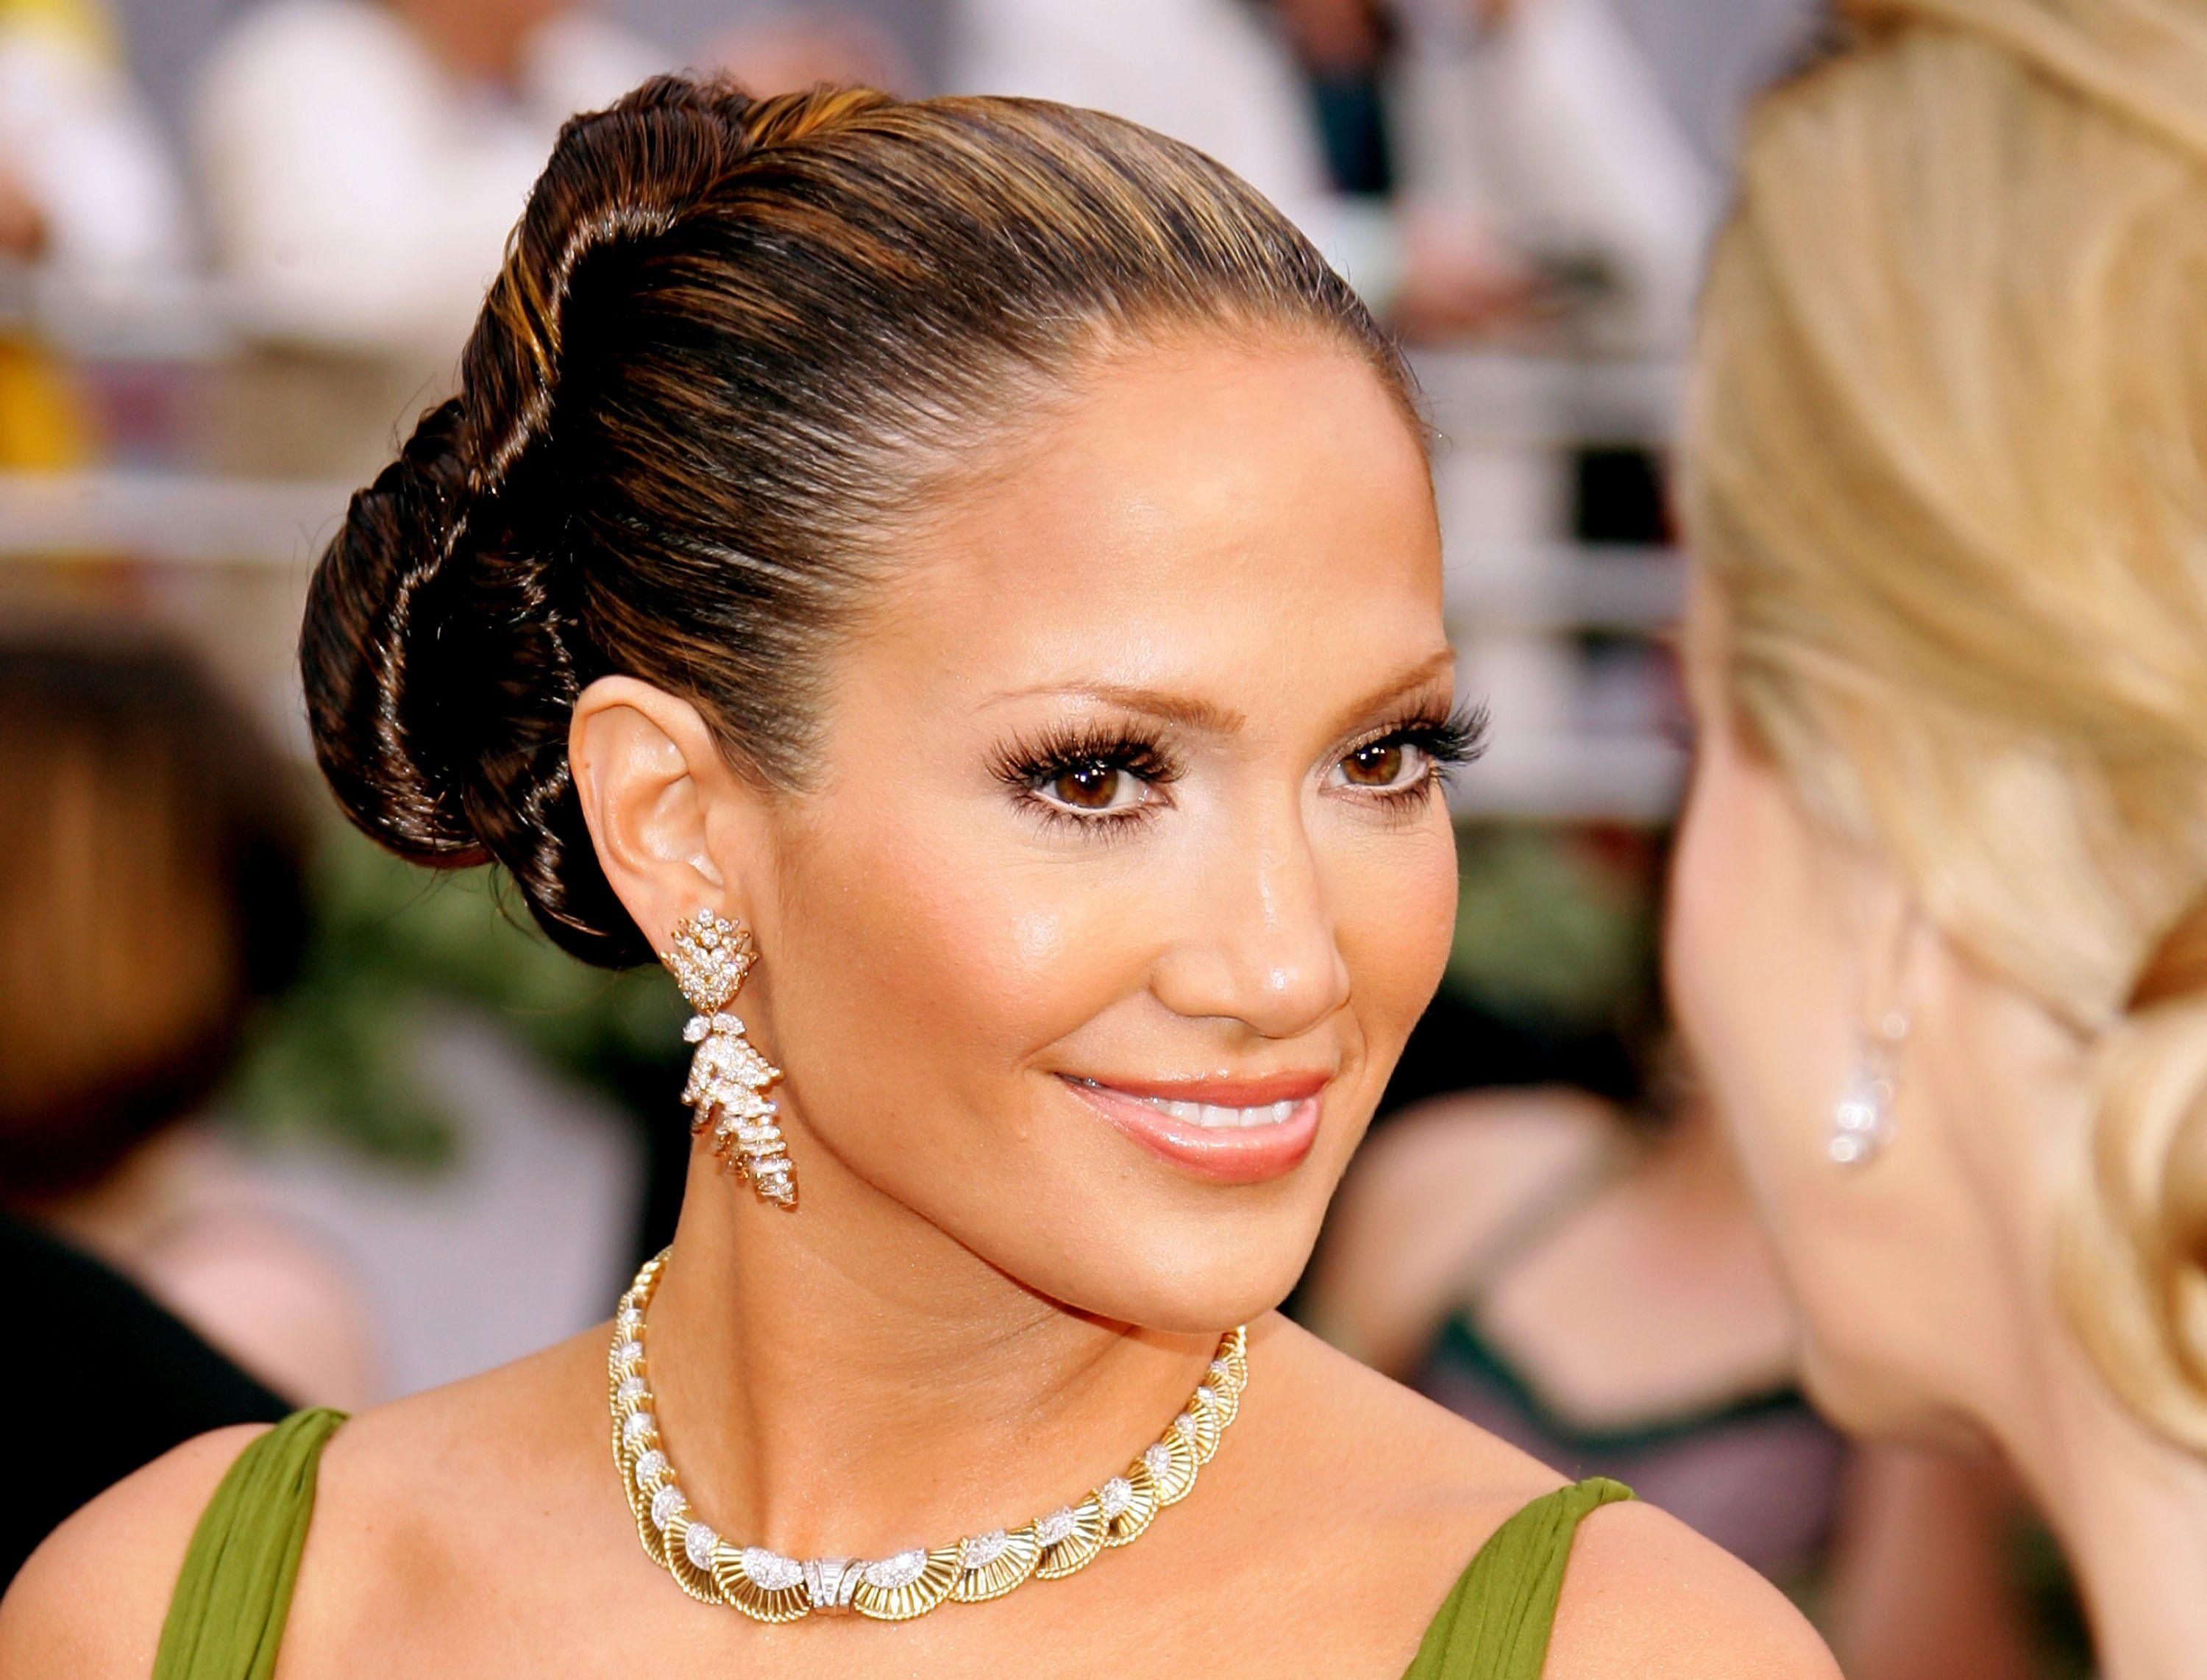 Jennifer Lopez during the 78th Annual Academy Awards on March 5, 2006, in Hollywood, California. | Source: Getty Images